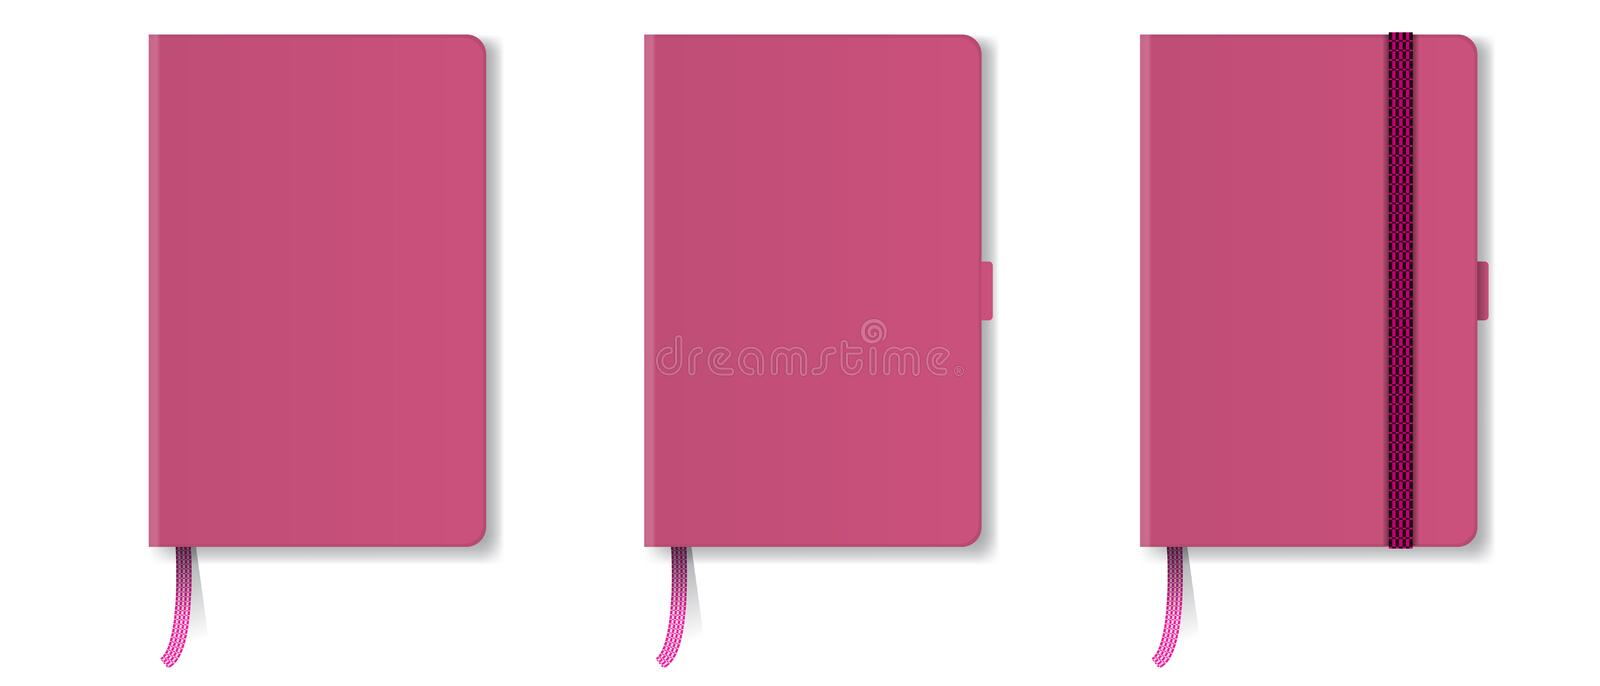 Pink realistic hard cover notebook with red bookmark and ribbon. Vector illustration. royalty free illustration